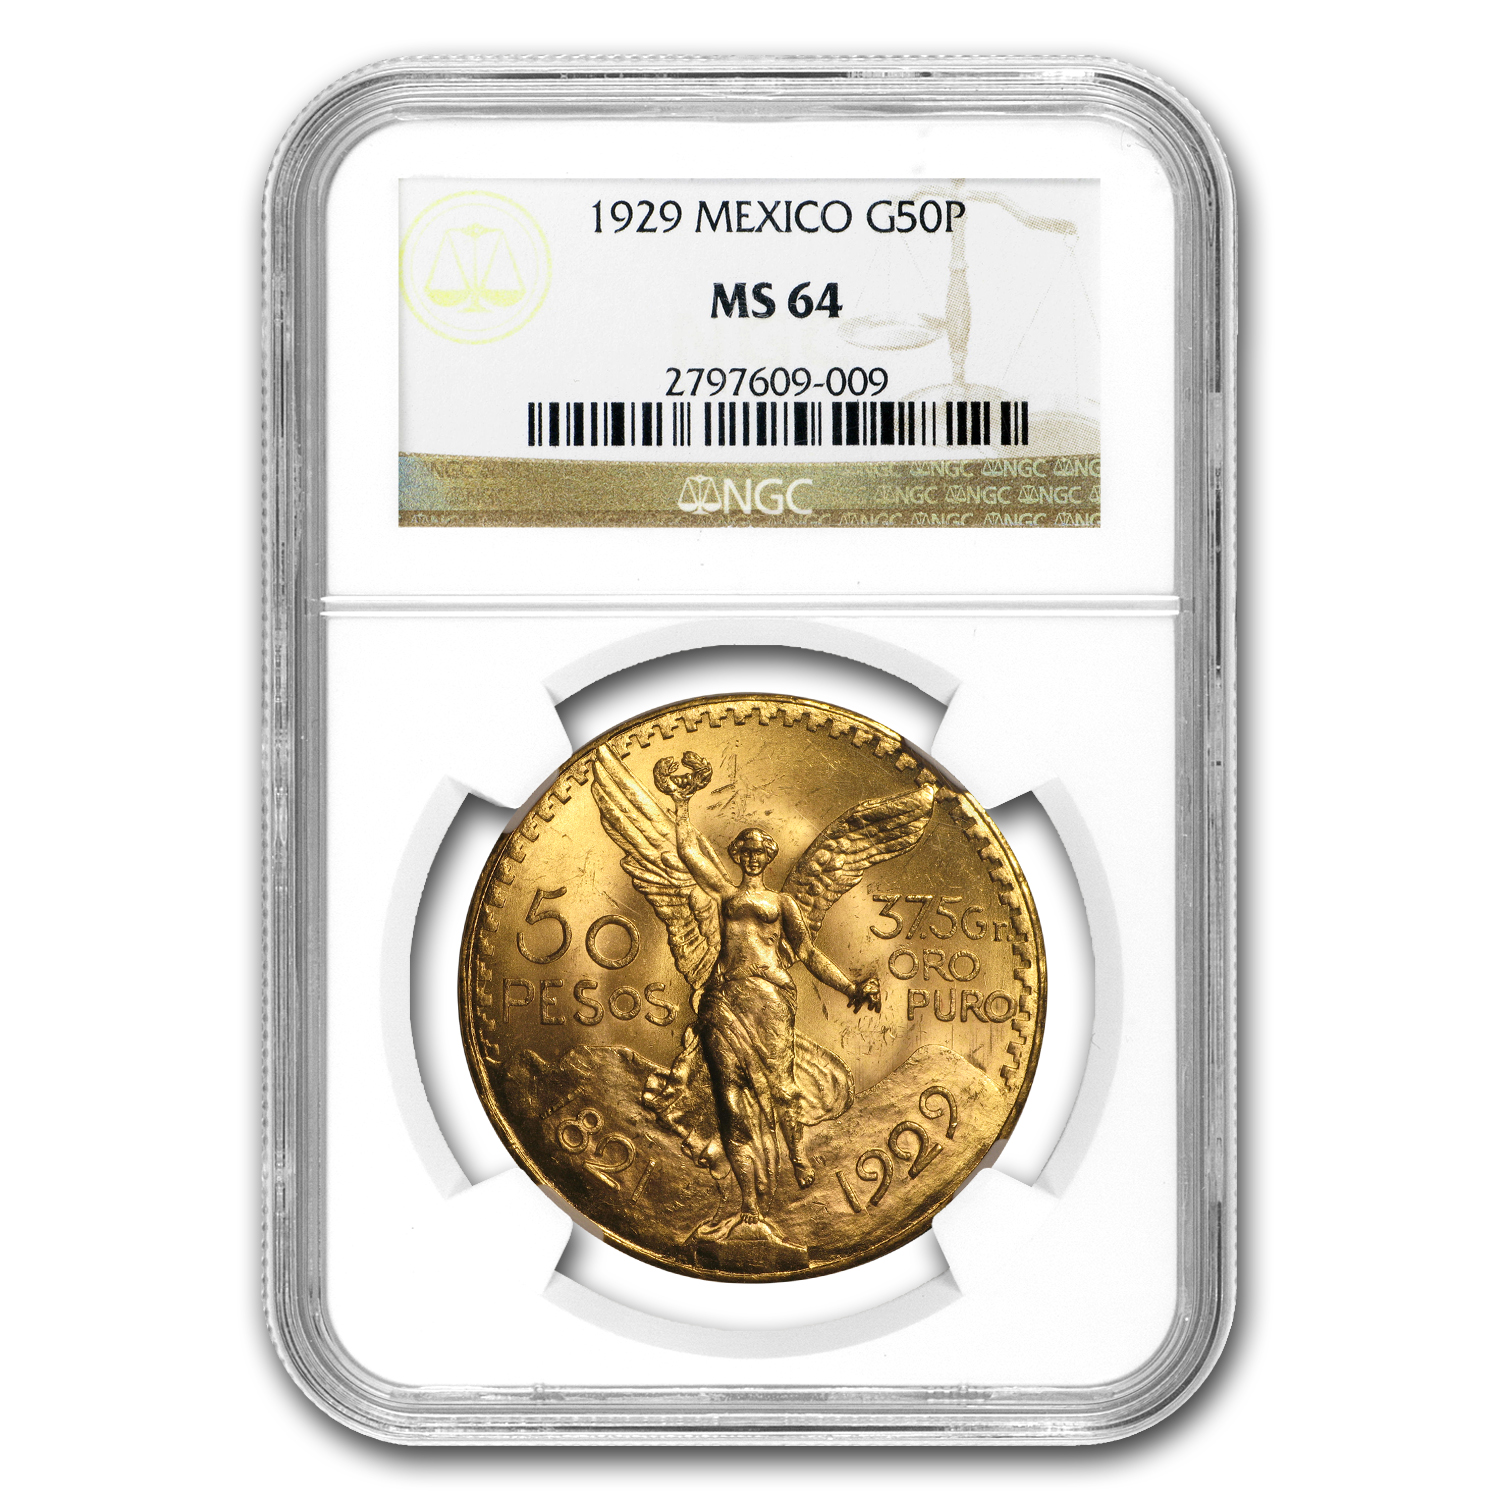 Mexico 1929 50 Pesos Gold Coin - MS-64 NGC